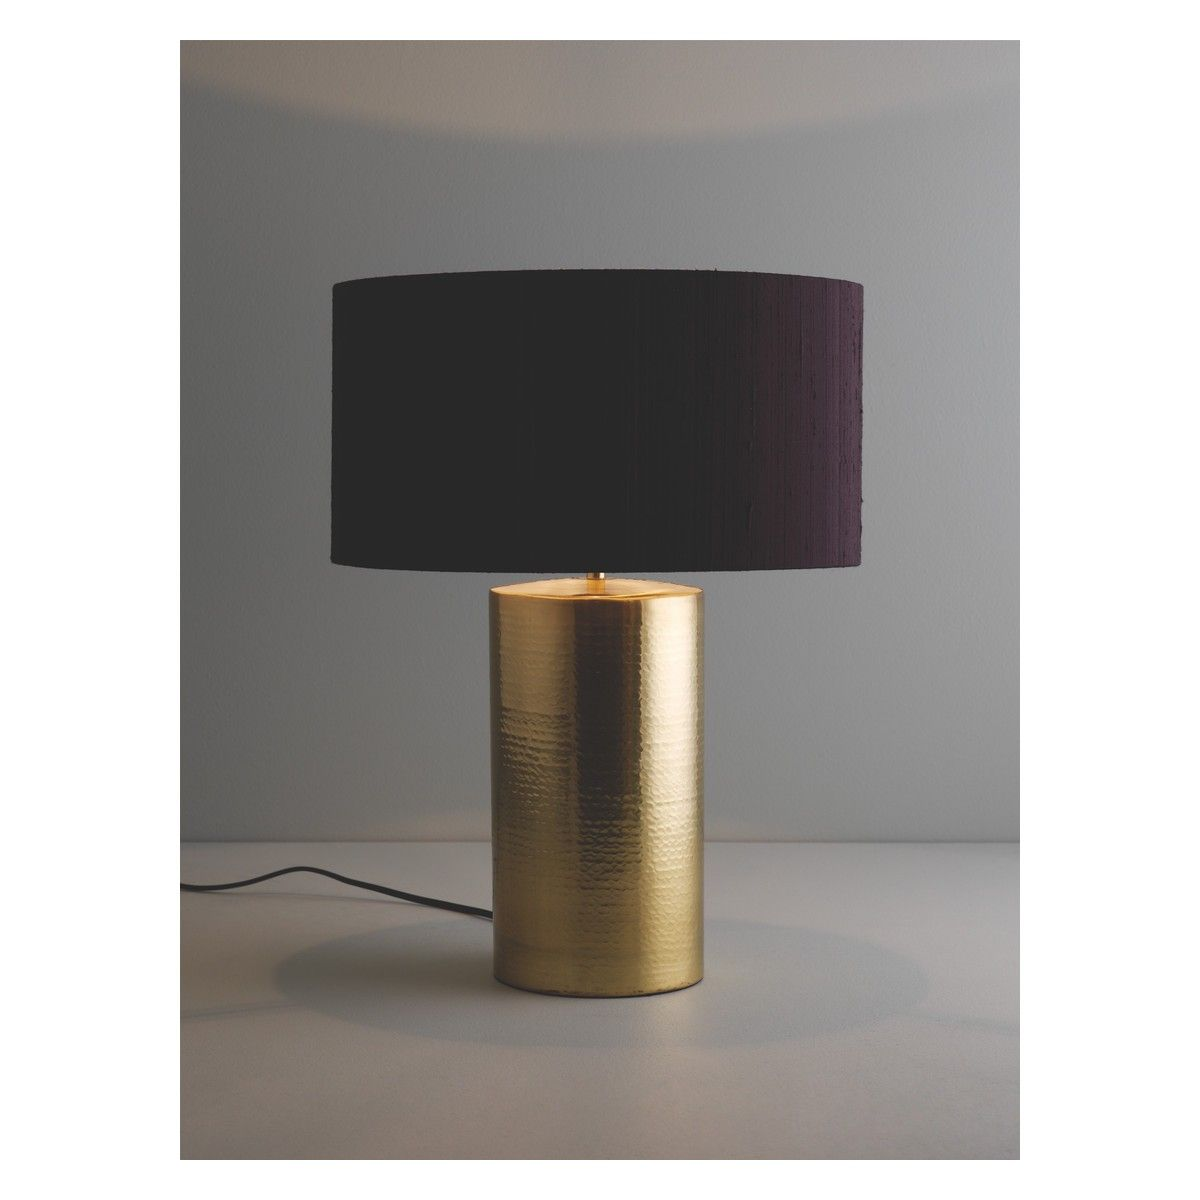 MARGO Brass table lamp base | Brass table lamps, Table lamp base ...